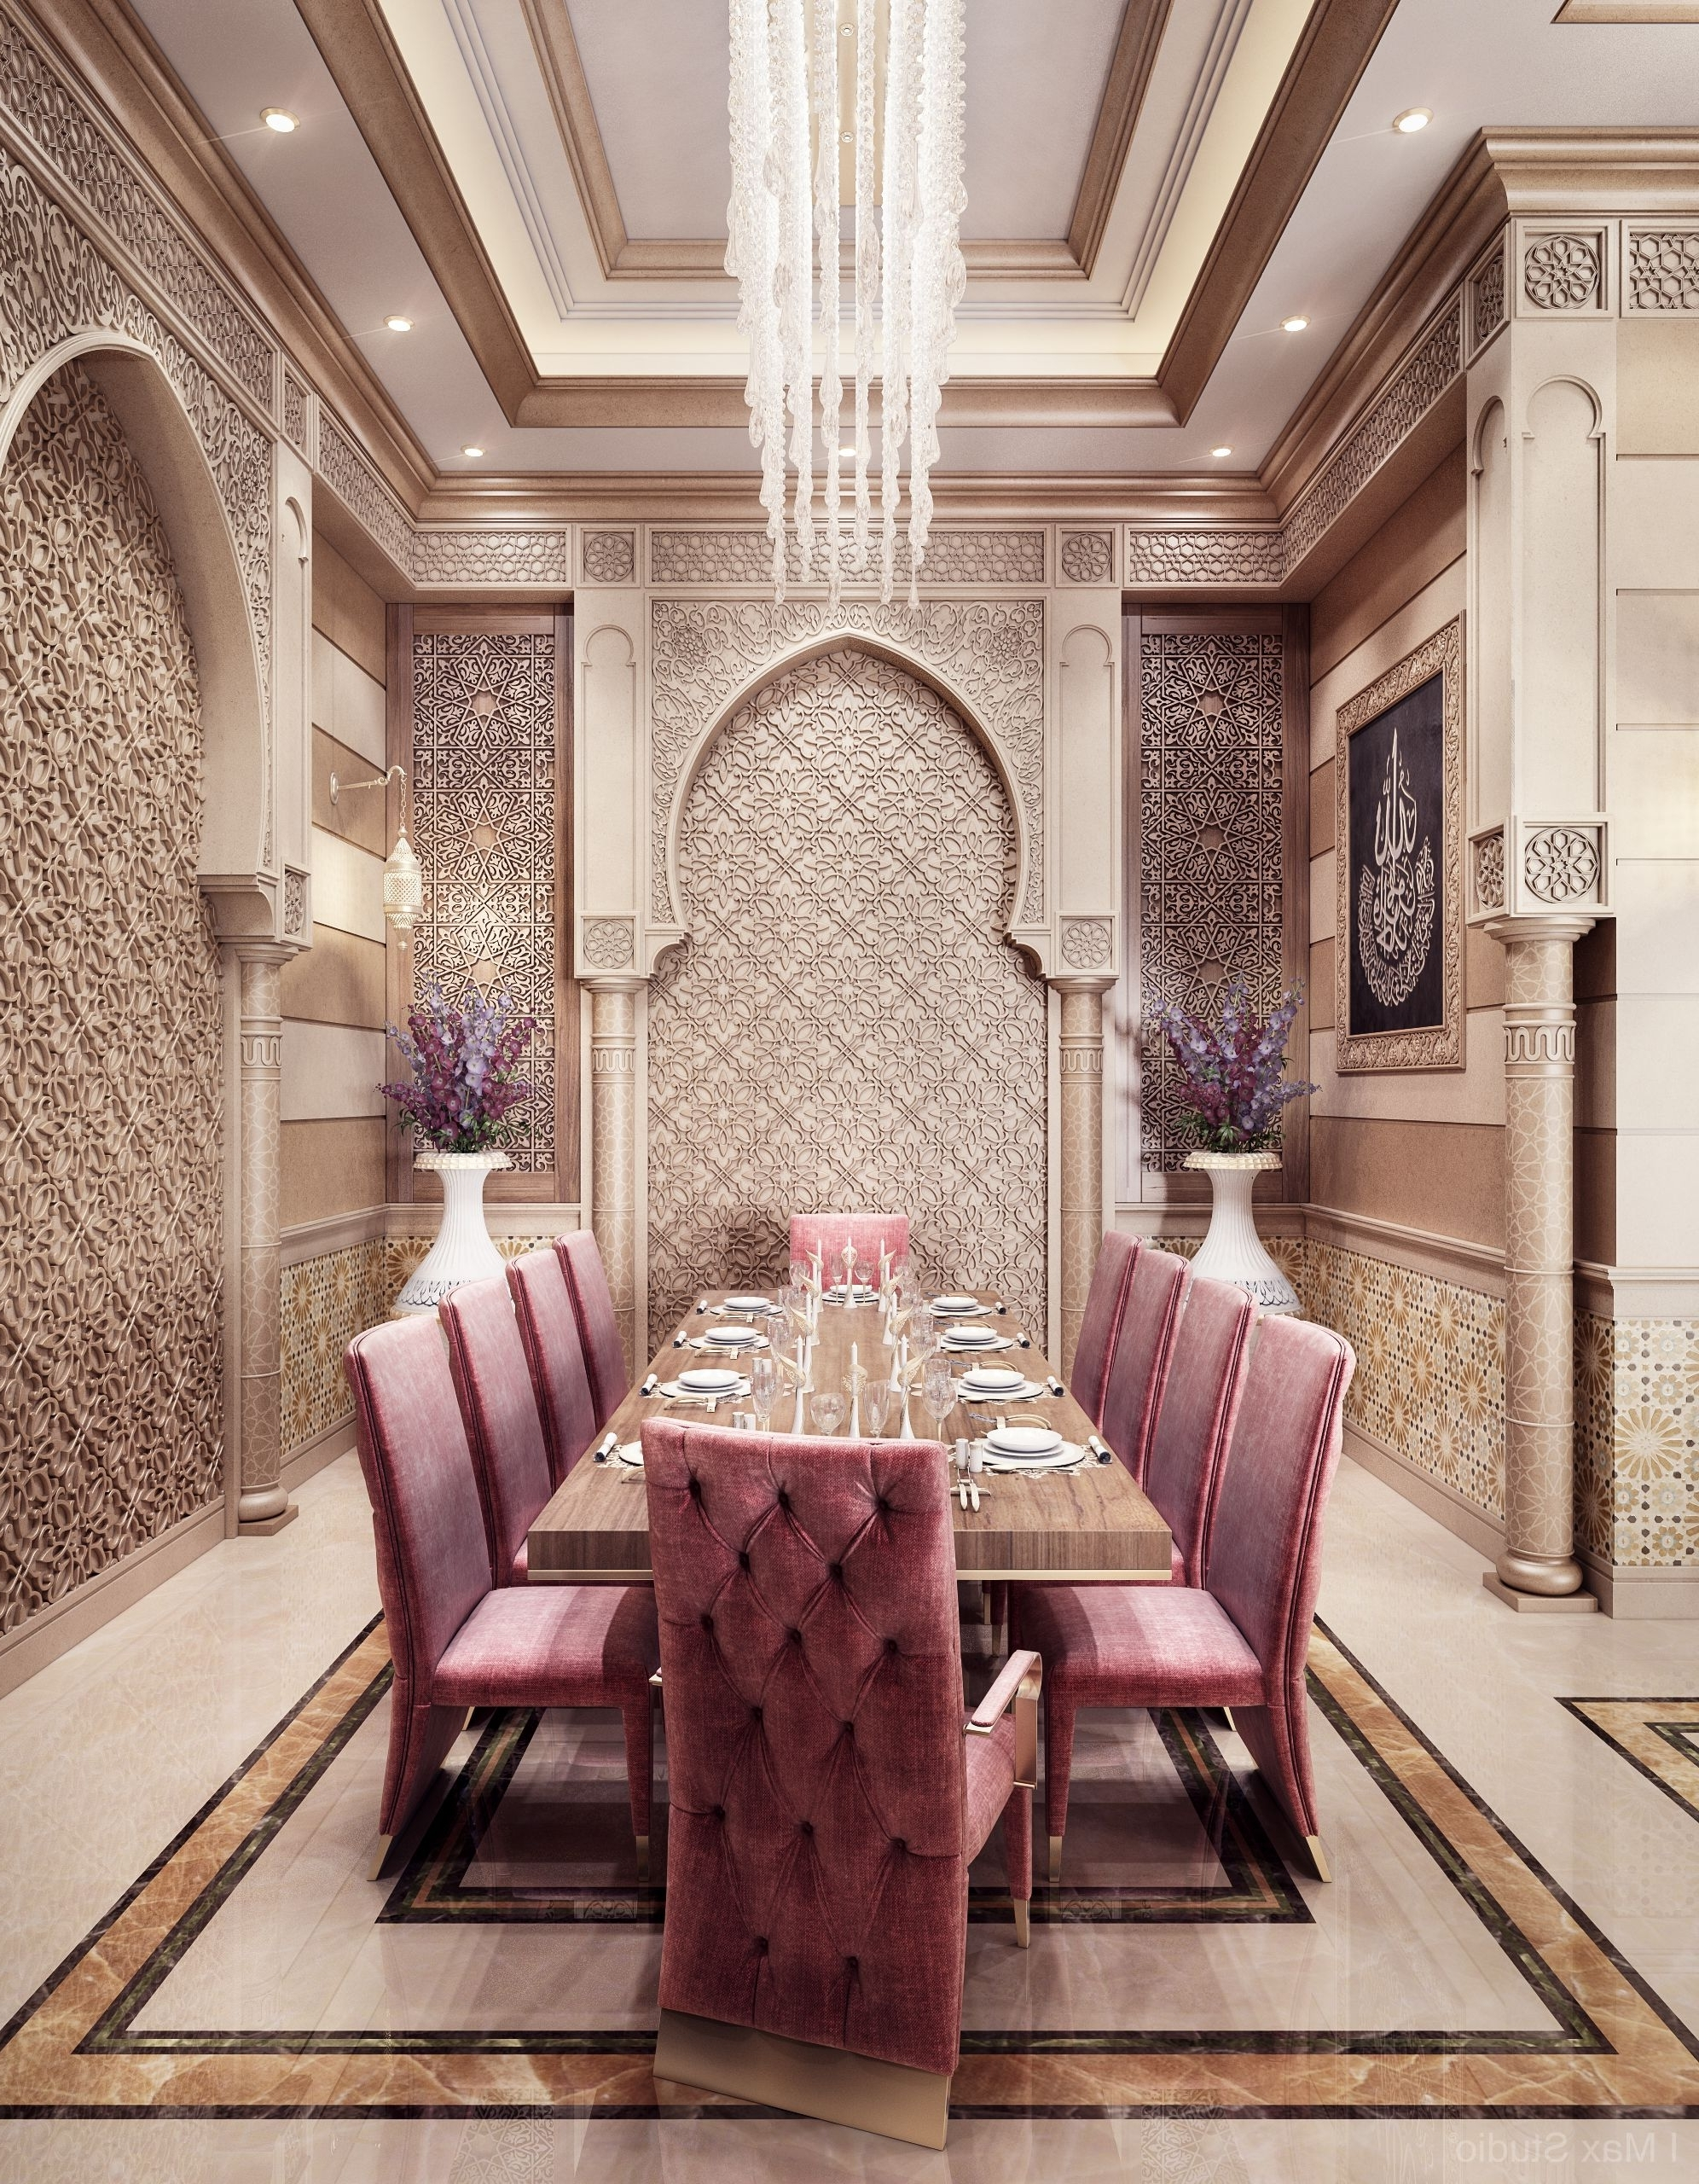 3 Furnishings. The Furniture In A Modern Arabian Style Home Arabian Dining Room Decor